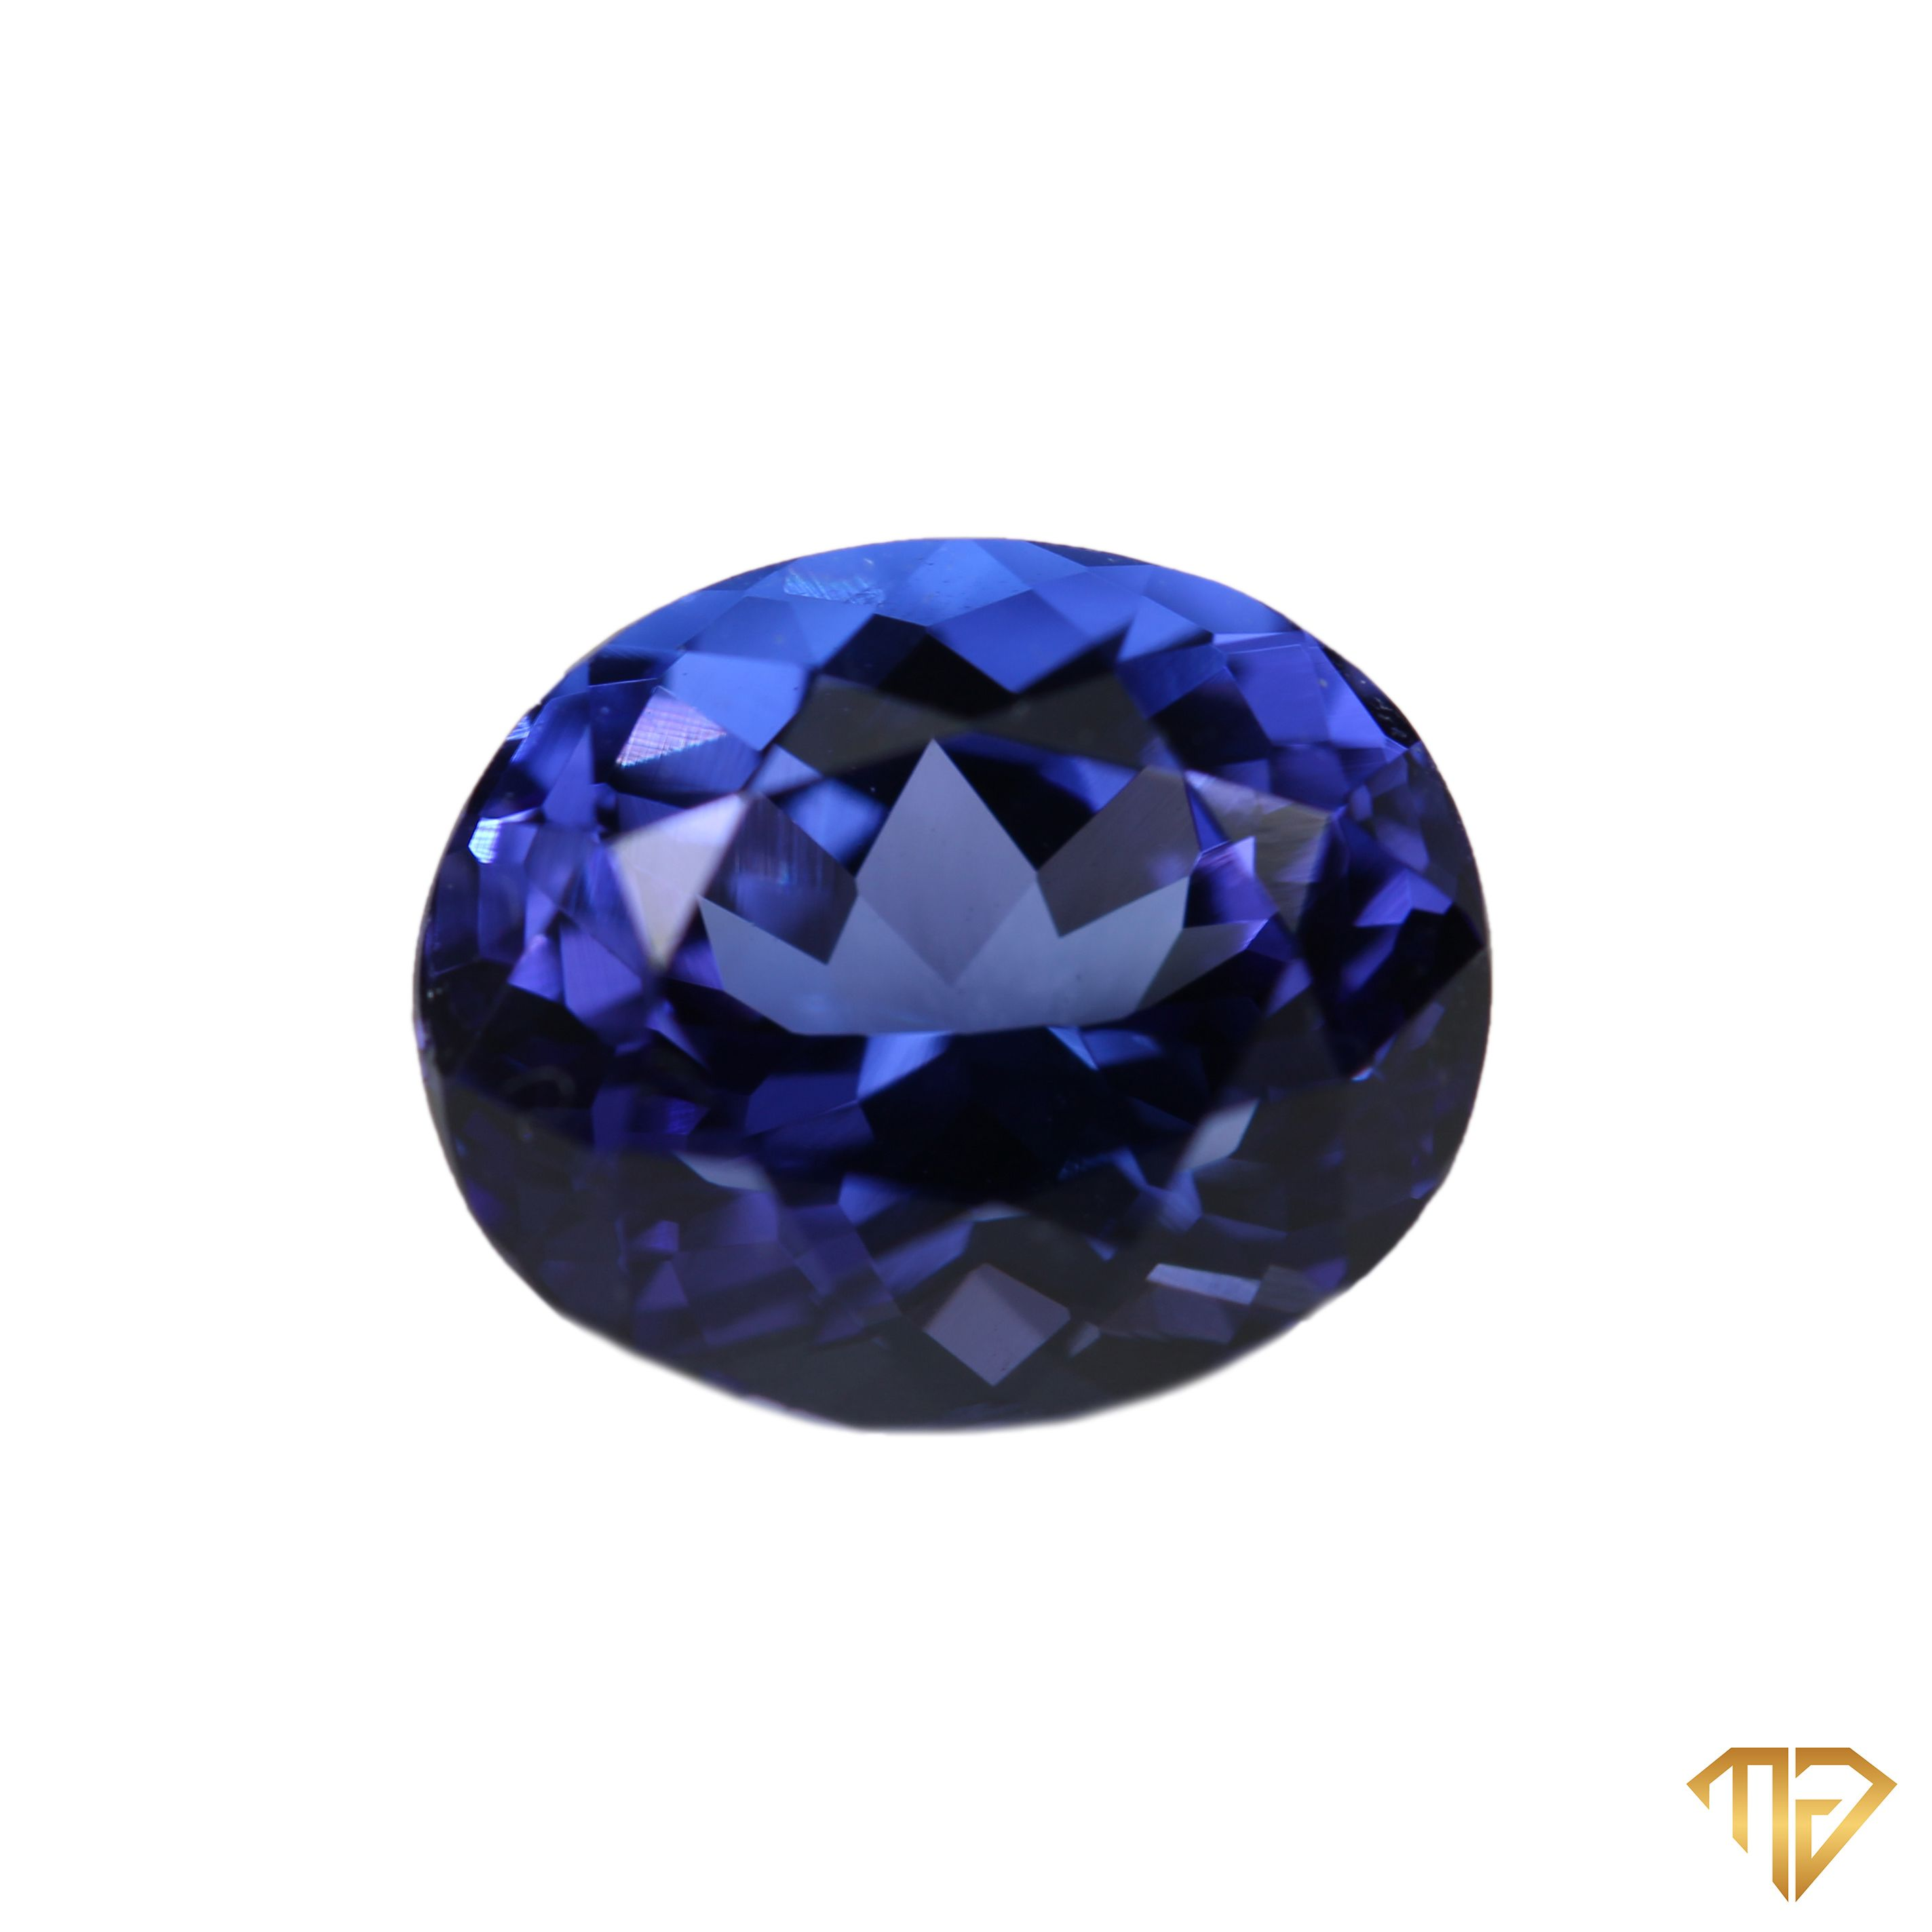 detailed gemstones tanzanite buy of zirconia gems bulk cut marquise cubic product images loose detail